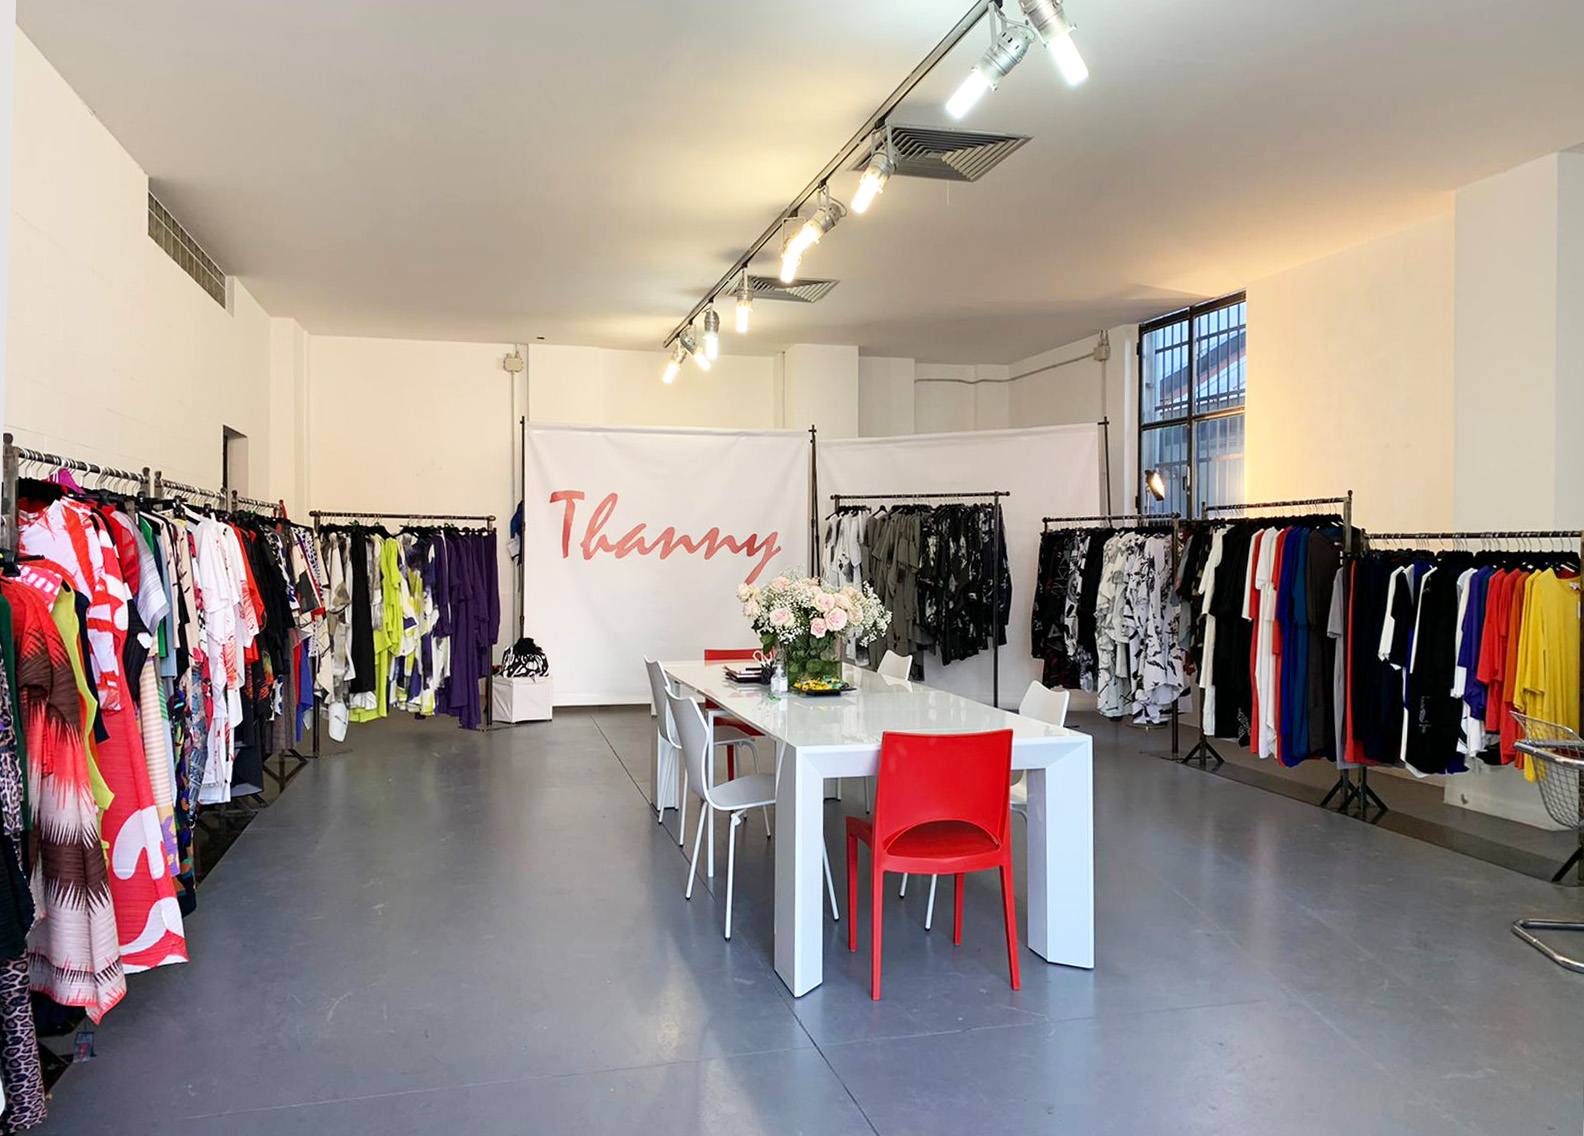 Thanny - Fashion Week SS21 in via Tortona 31 - 1